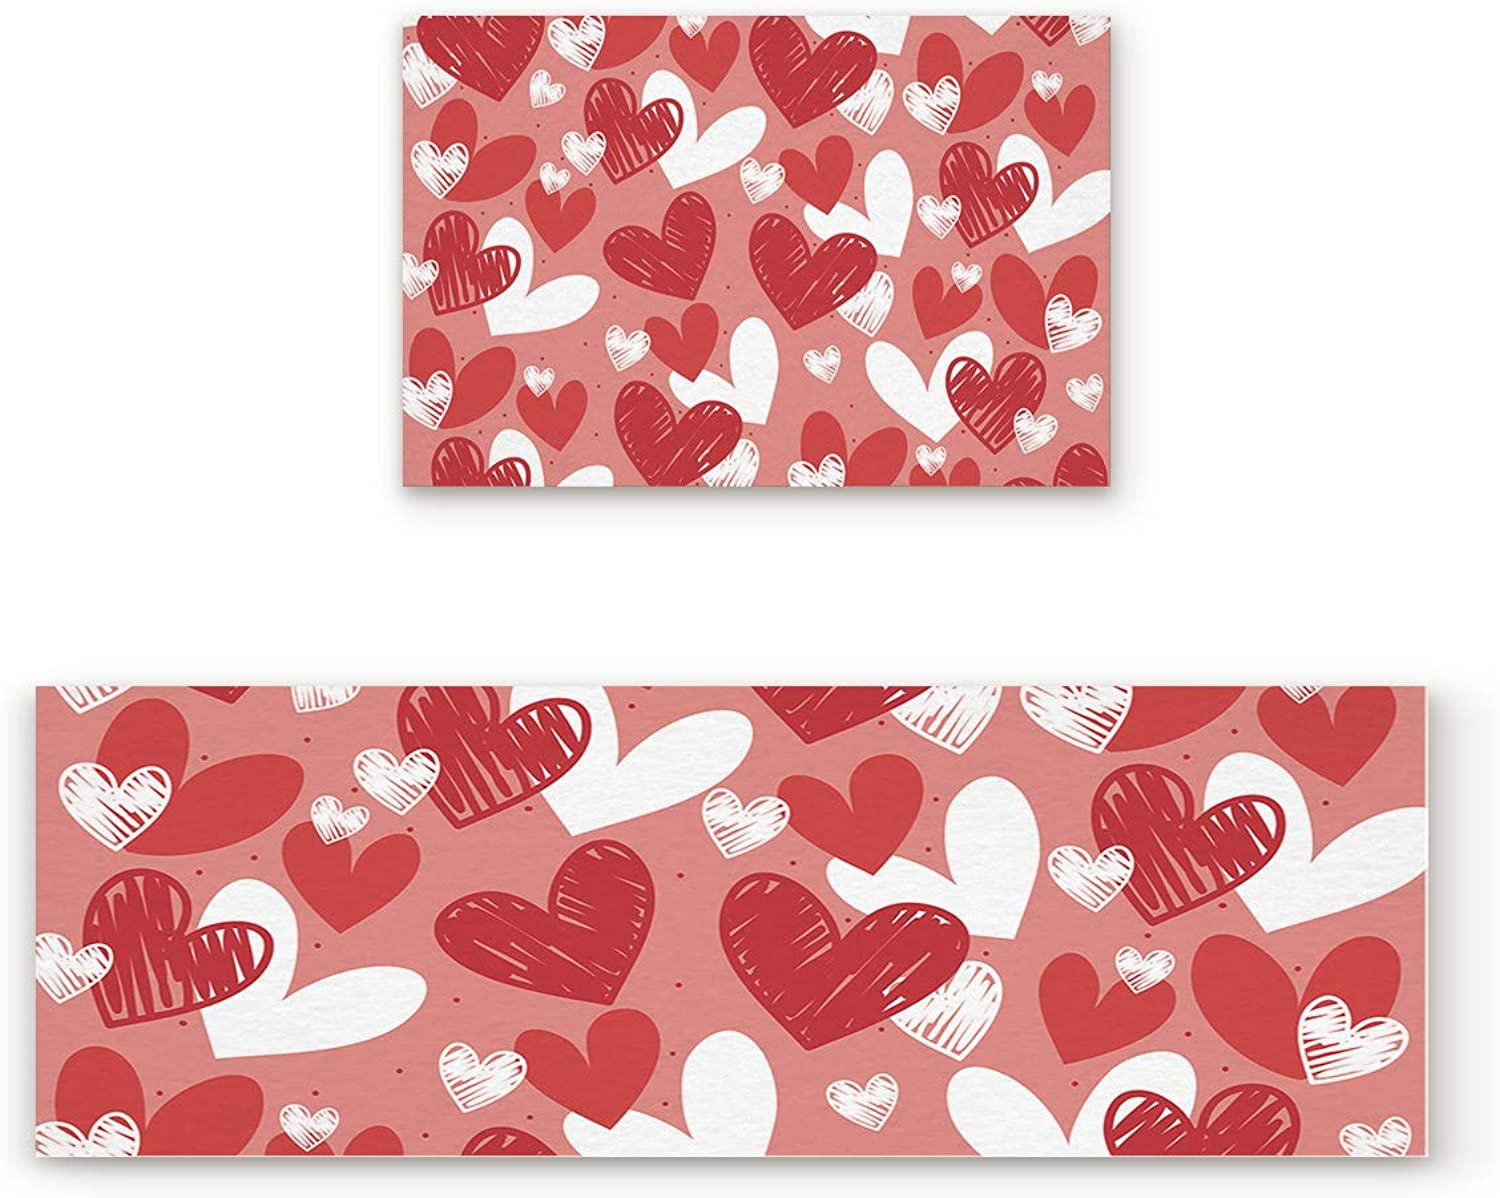 Aomike 2 Piece Non-Slip Kitchen Mat Rubber Backing Doormat Red White and Pink Hand Drawn Hearts Pattern Runner Rug Set, Hallway Living Room Balcony Bathroom Carpet Sets (19.7  x 31.5 +19.7  x 63 )